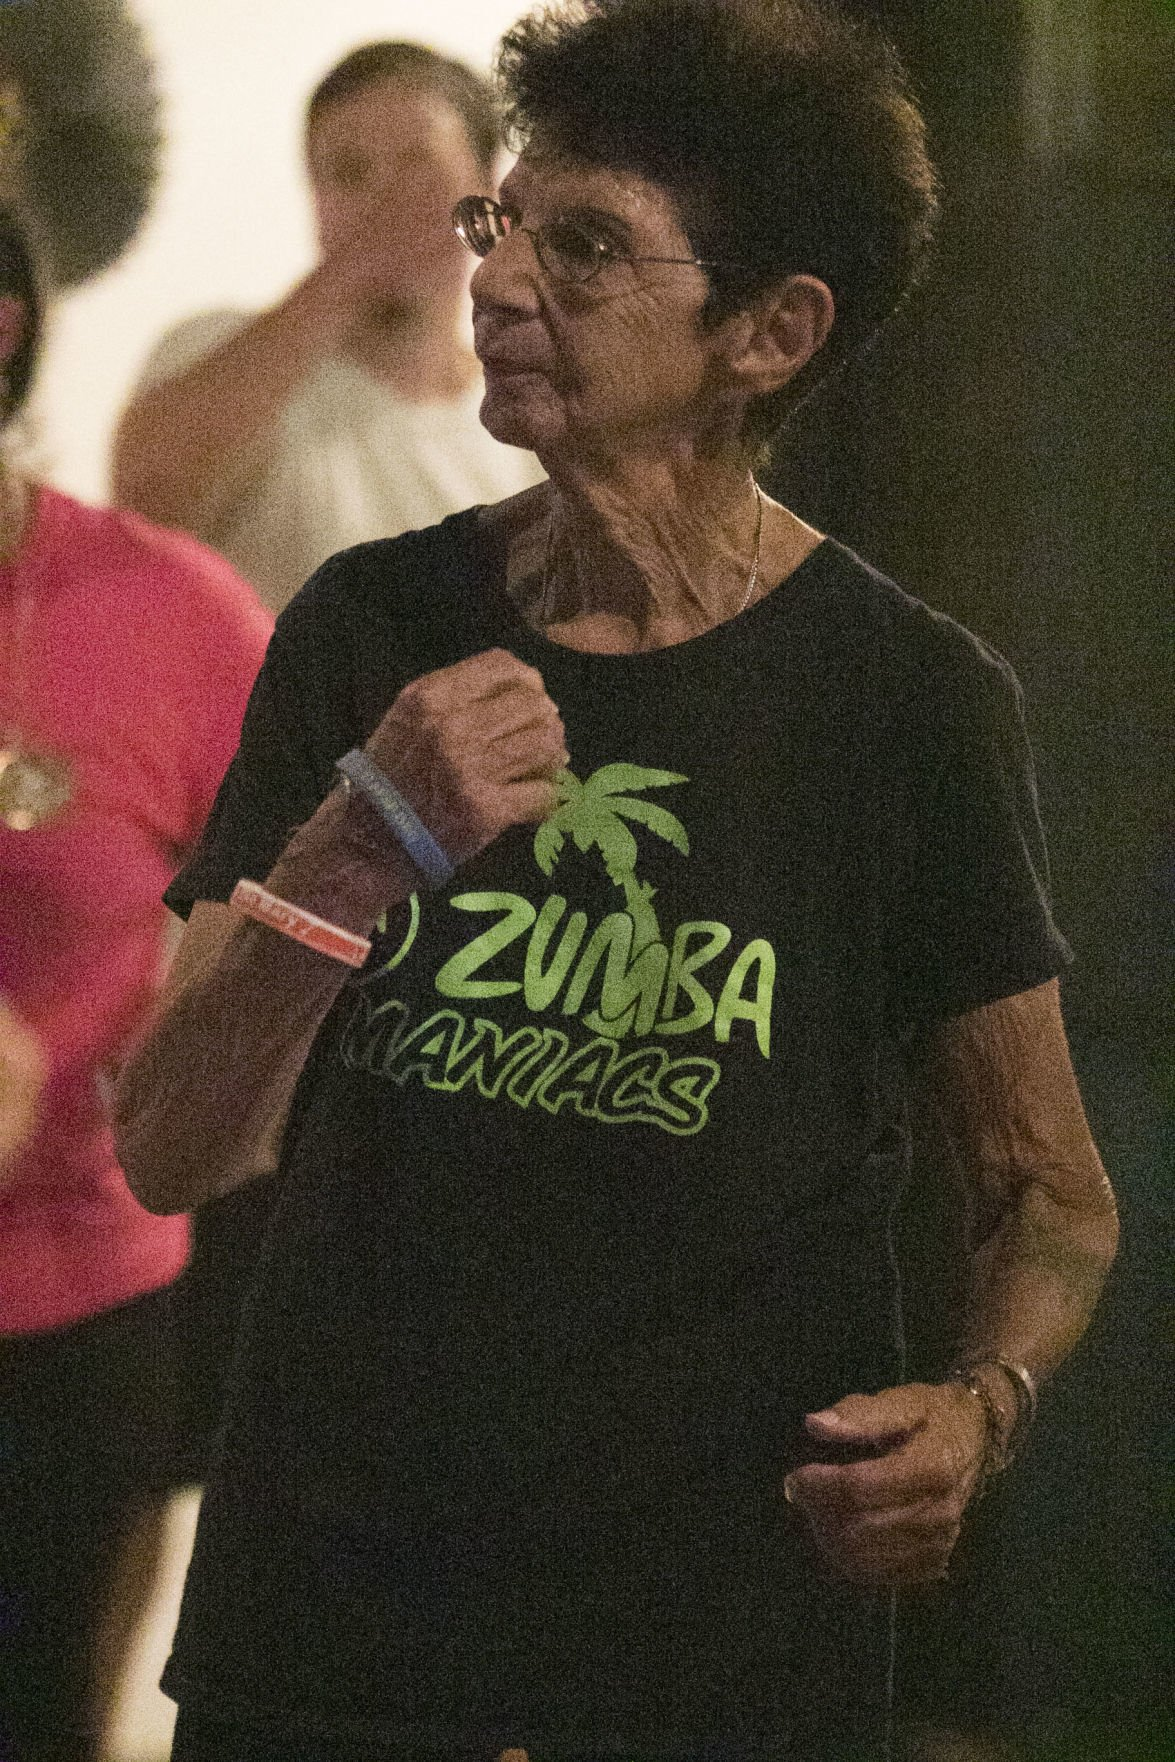 Zumba with Barbee